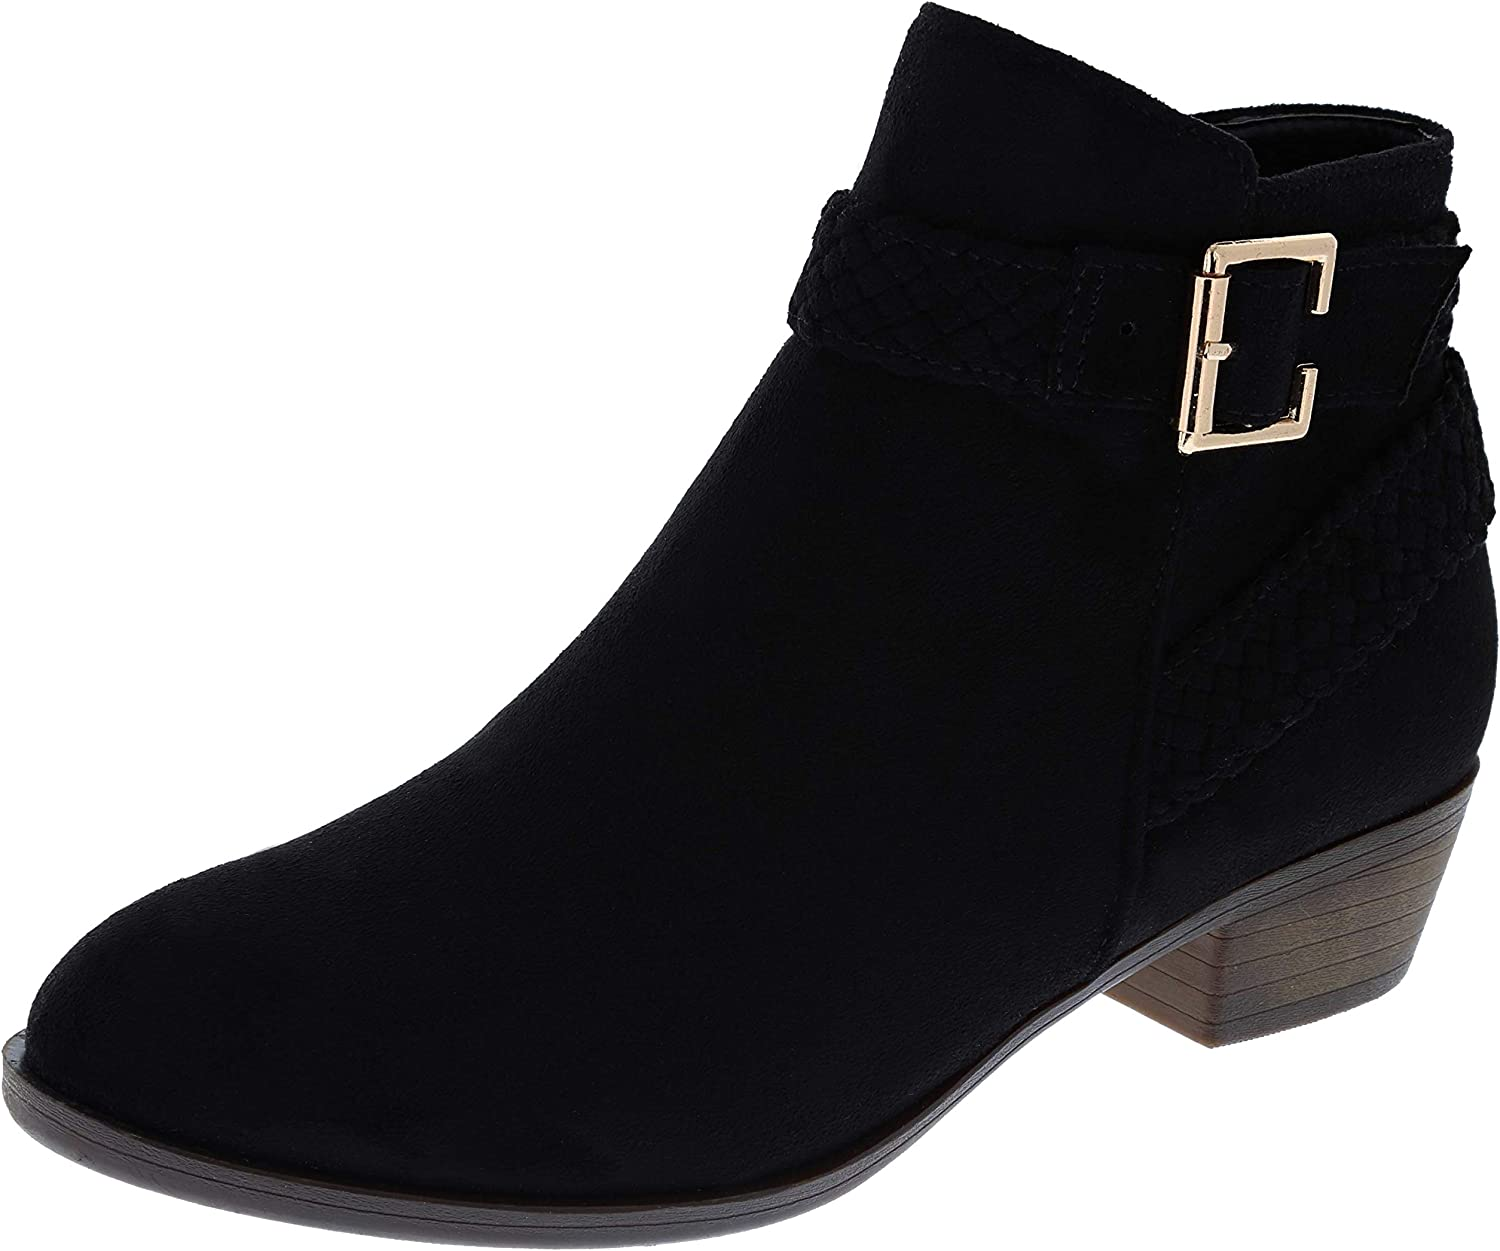 Cambridge Select Women's Western Woven Braid Strappy Chunky Low Heel Ankle Bootie